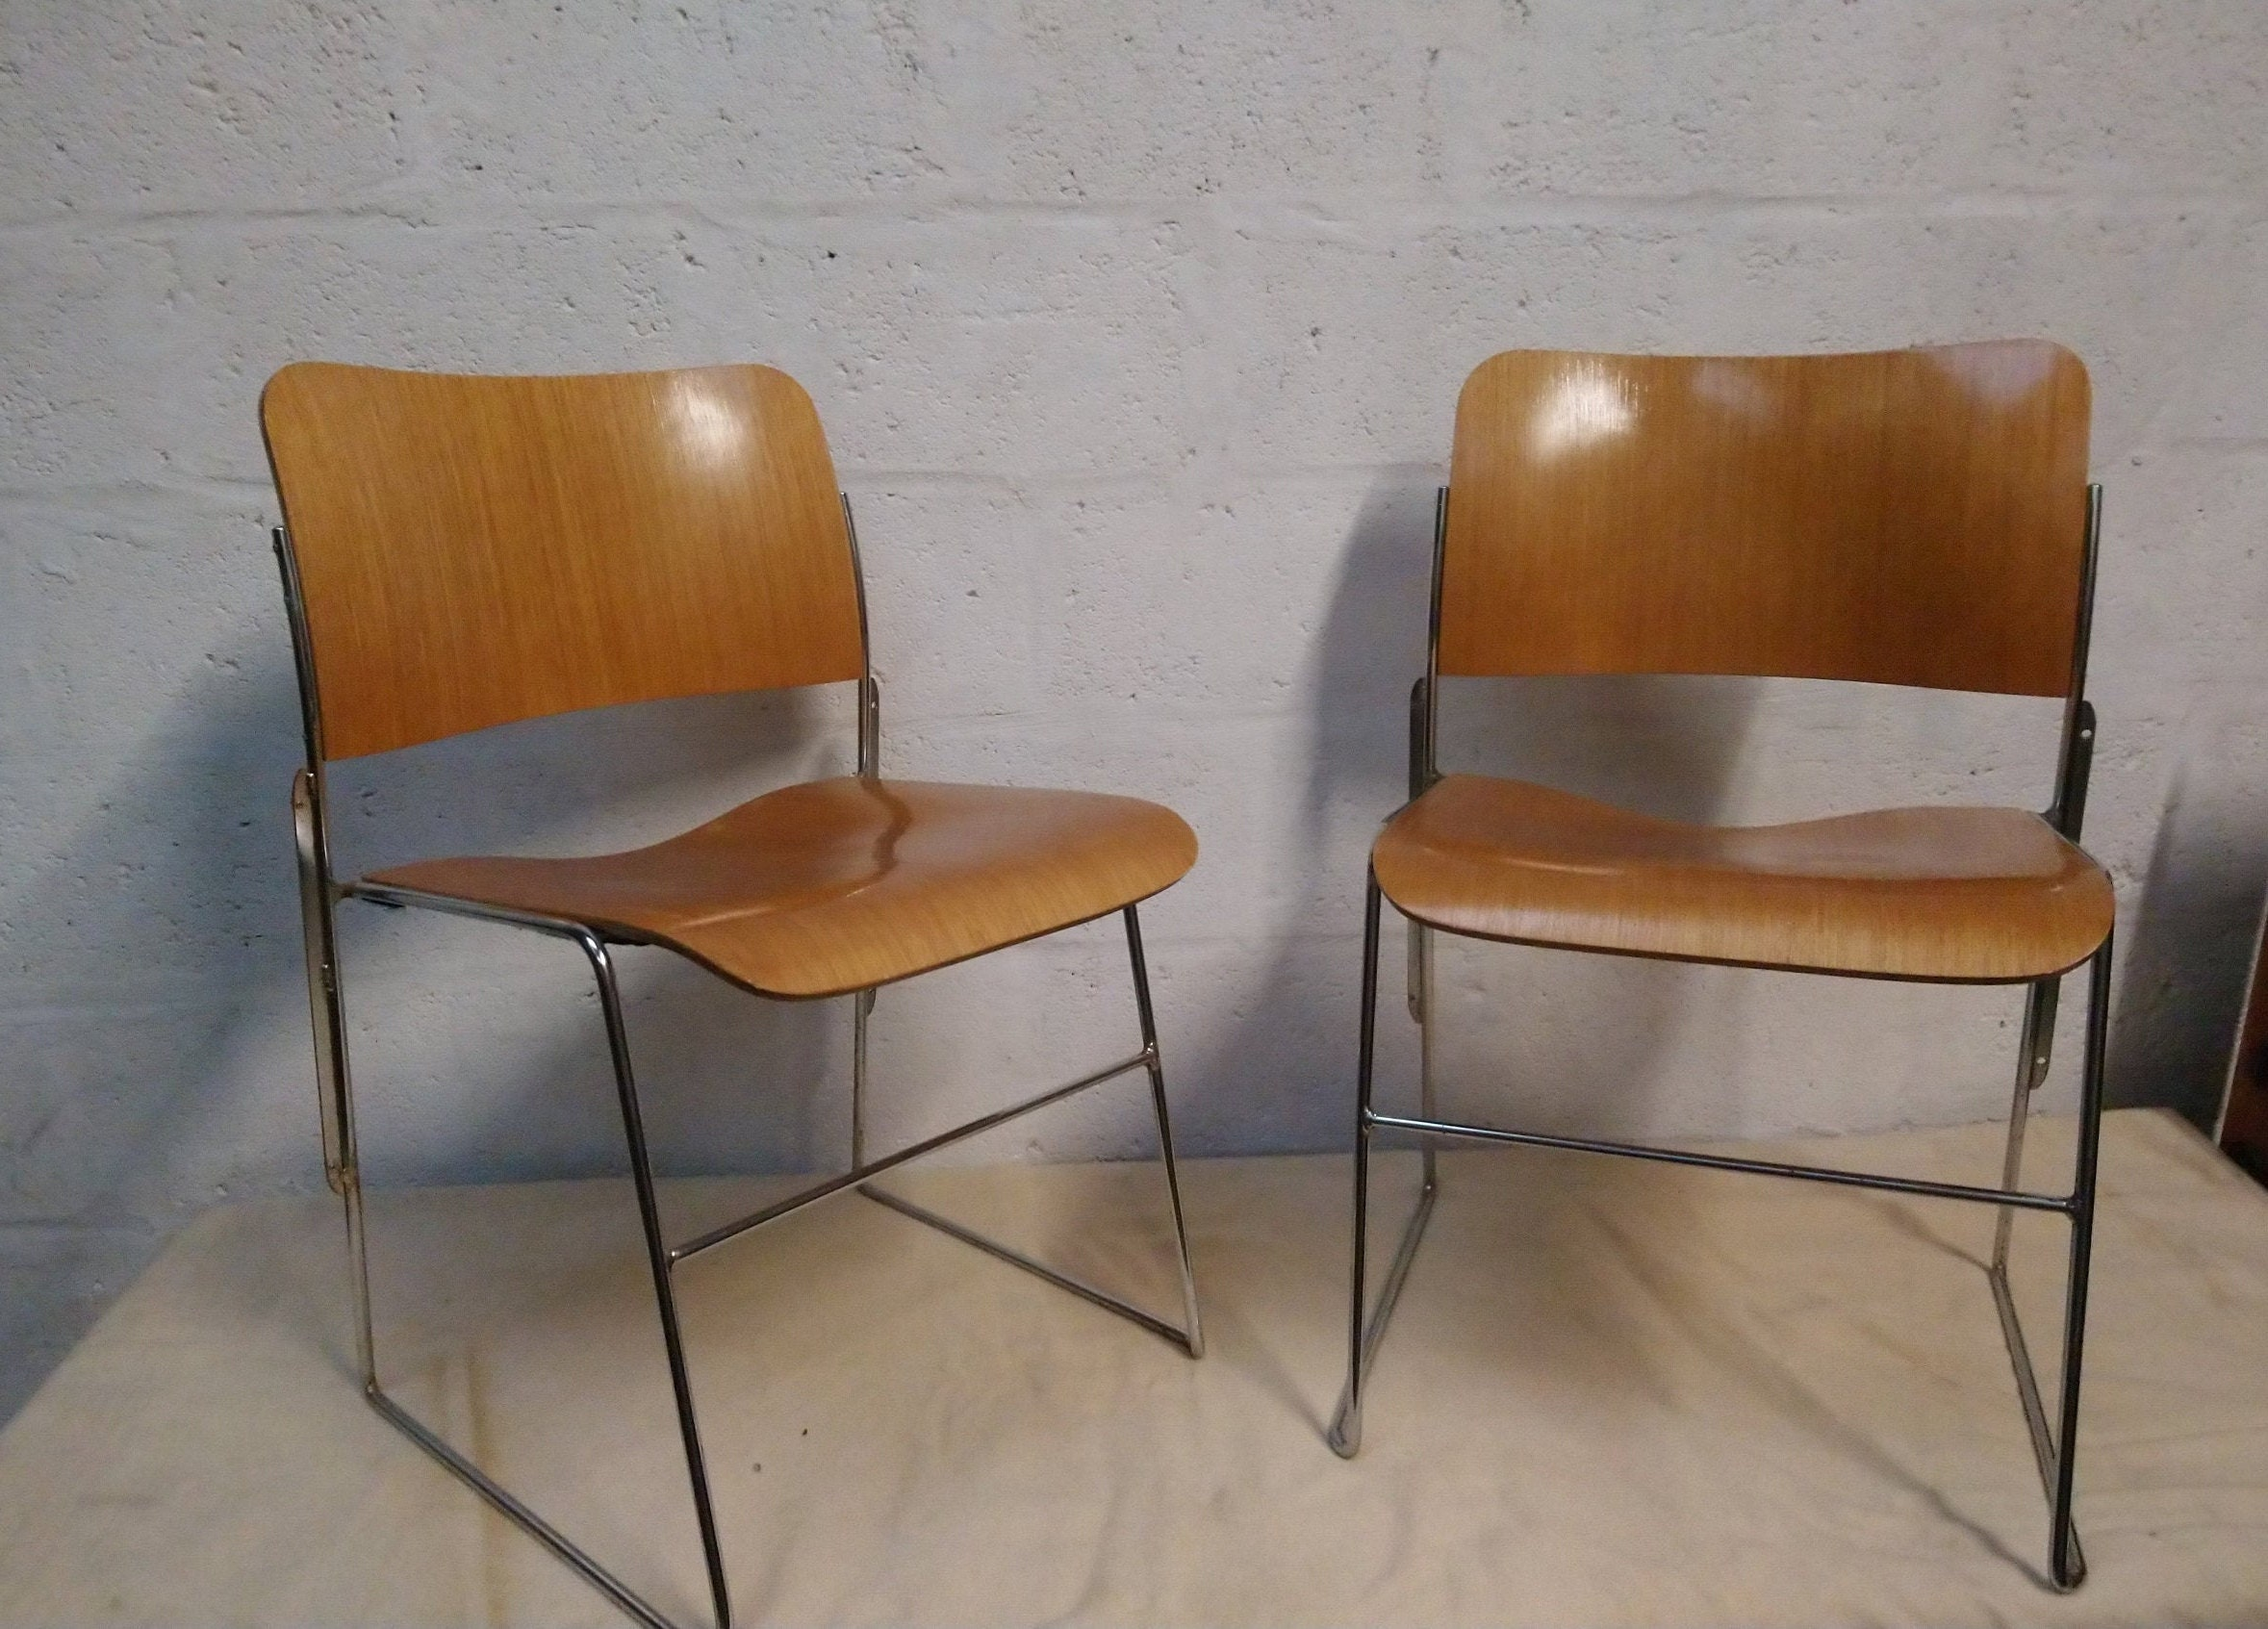 Pair Of Vintage David Rowland Stacking Chair Model 40 4 Gf 1970s Moulded Plywood